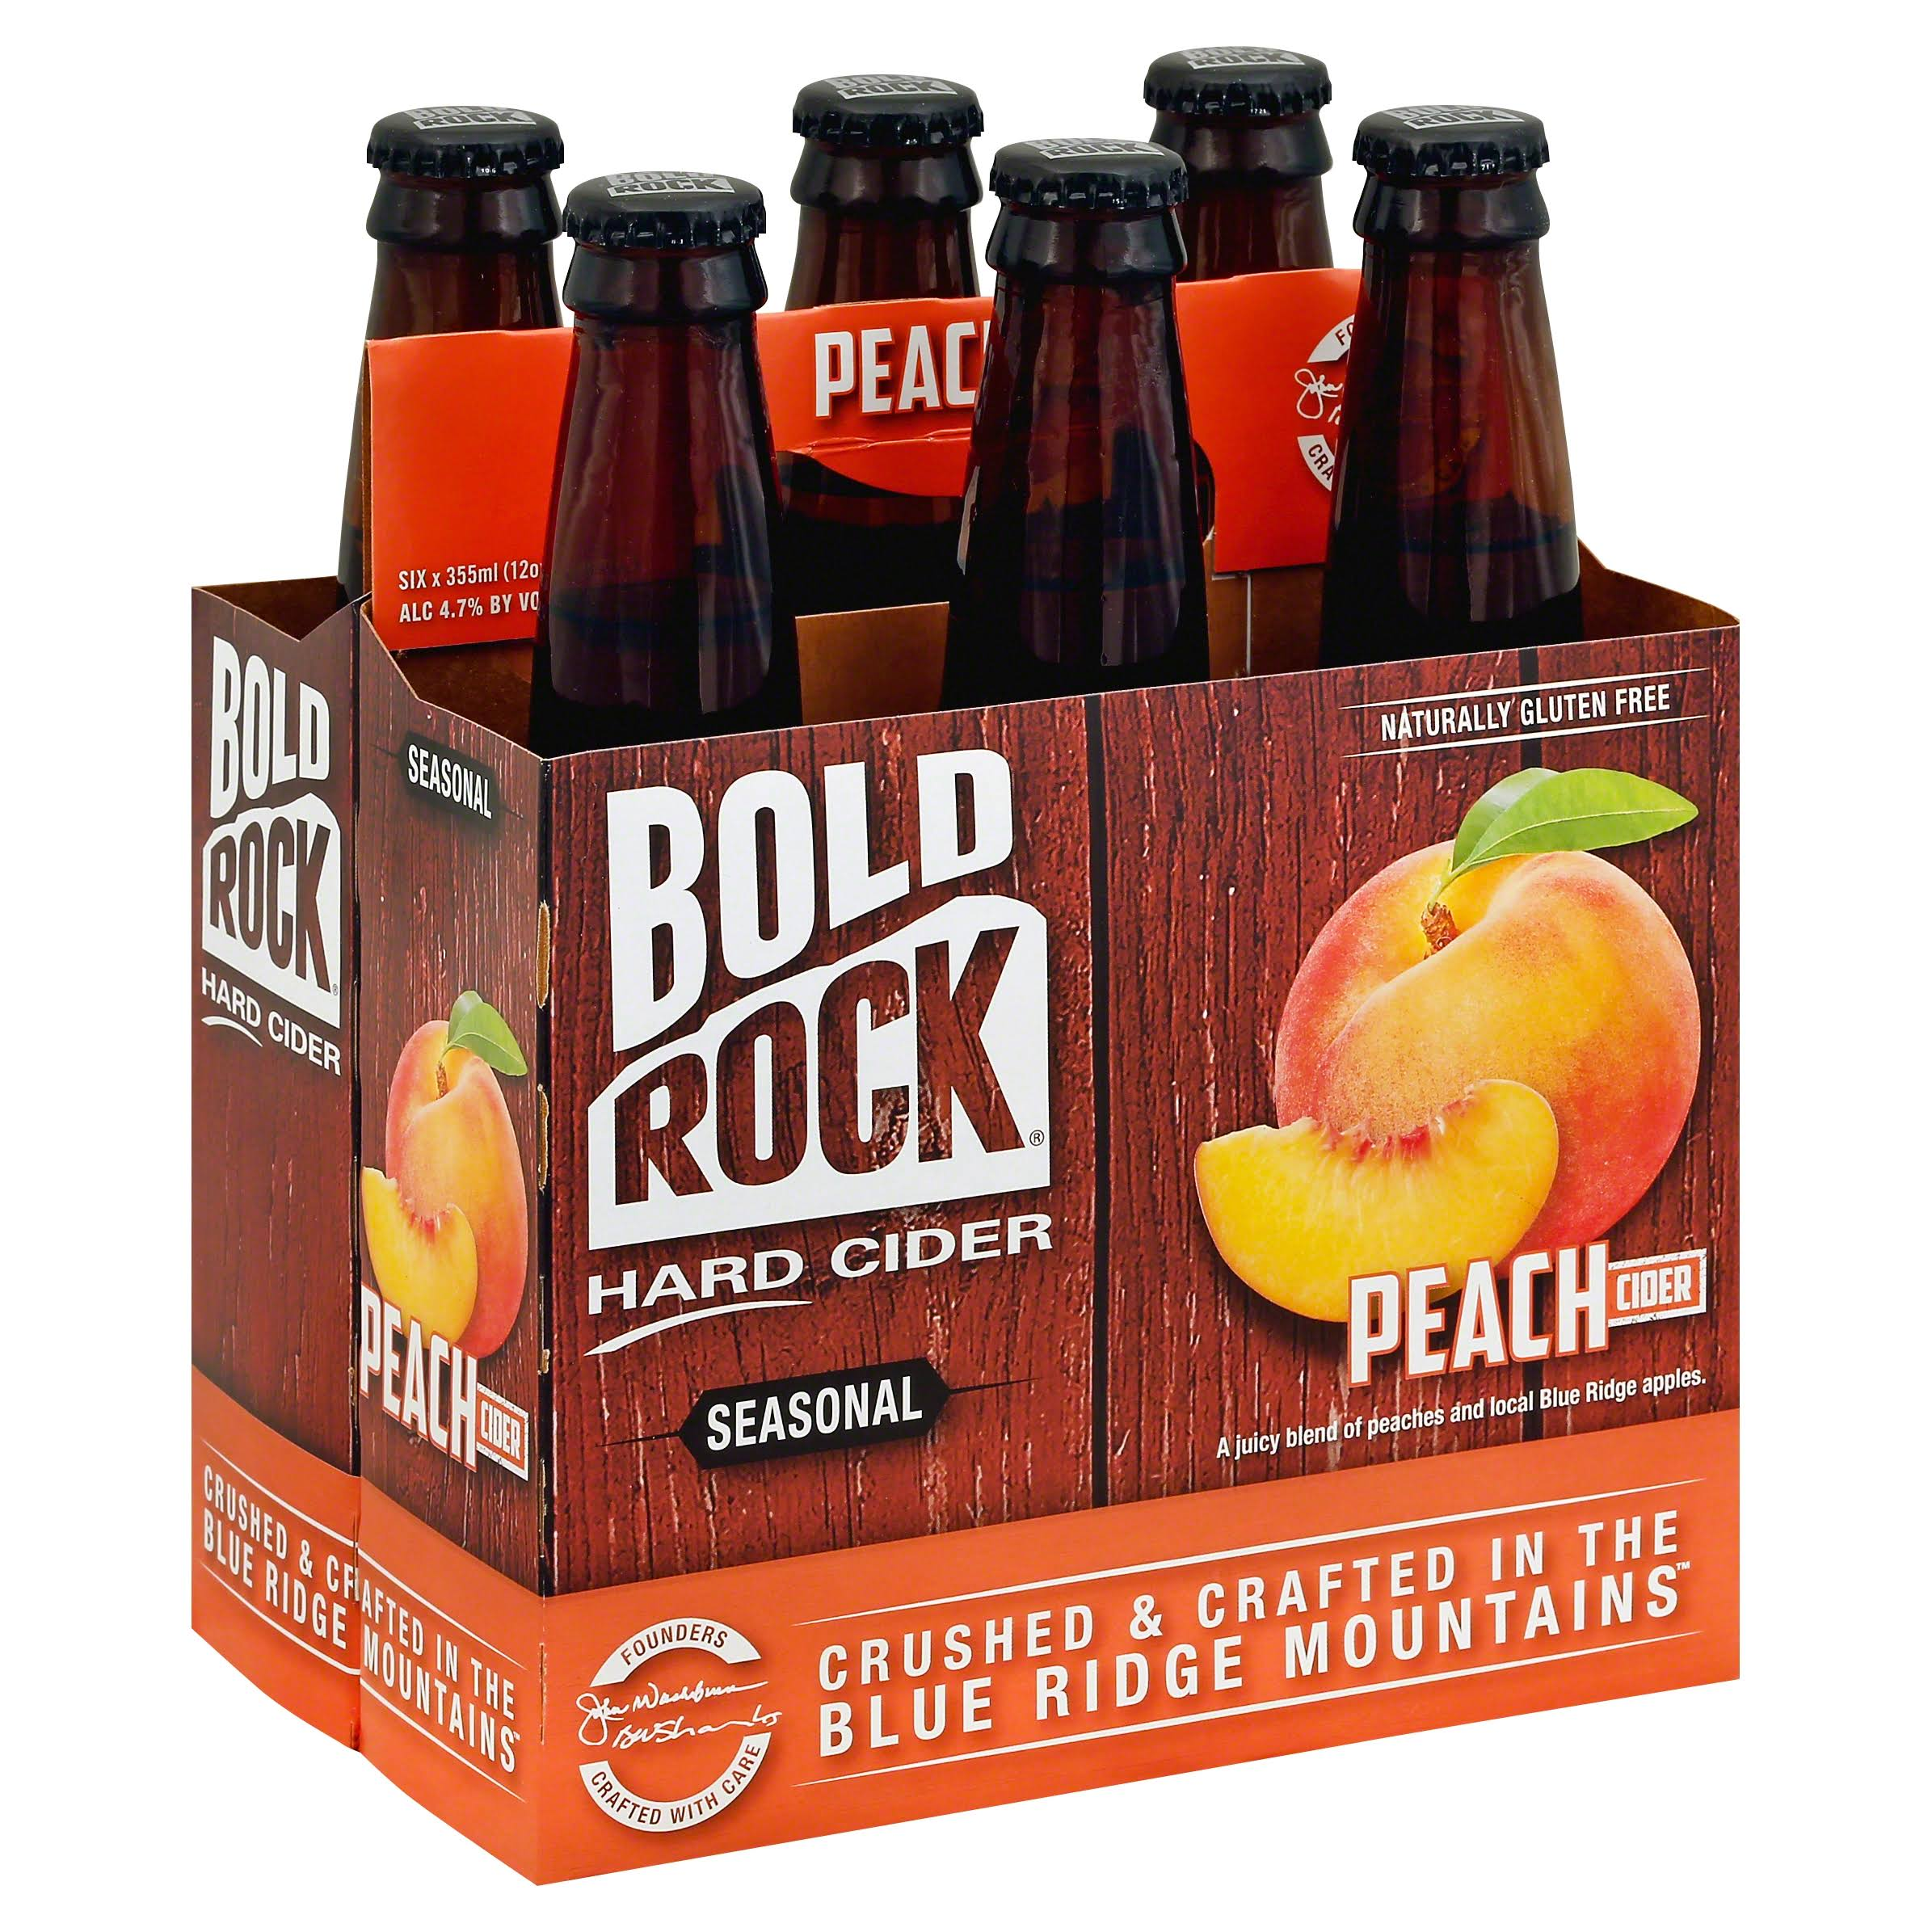 Bold Rock Hard Cider, Peach - 6 pack, 12 oz bottles